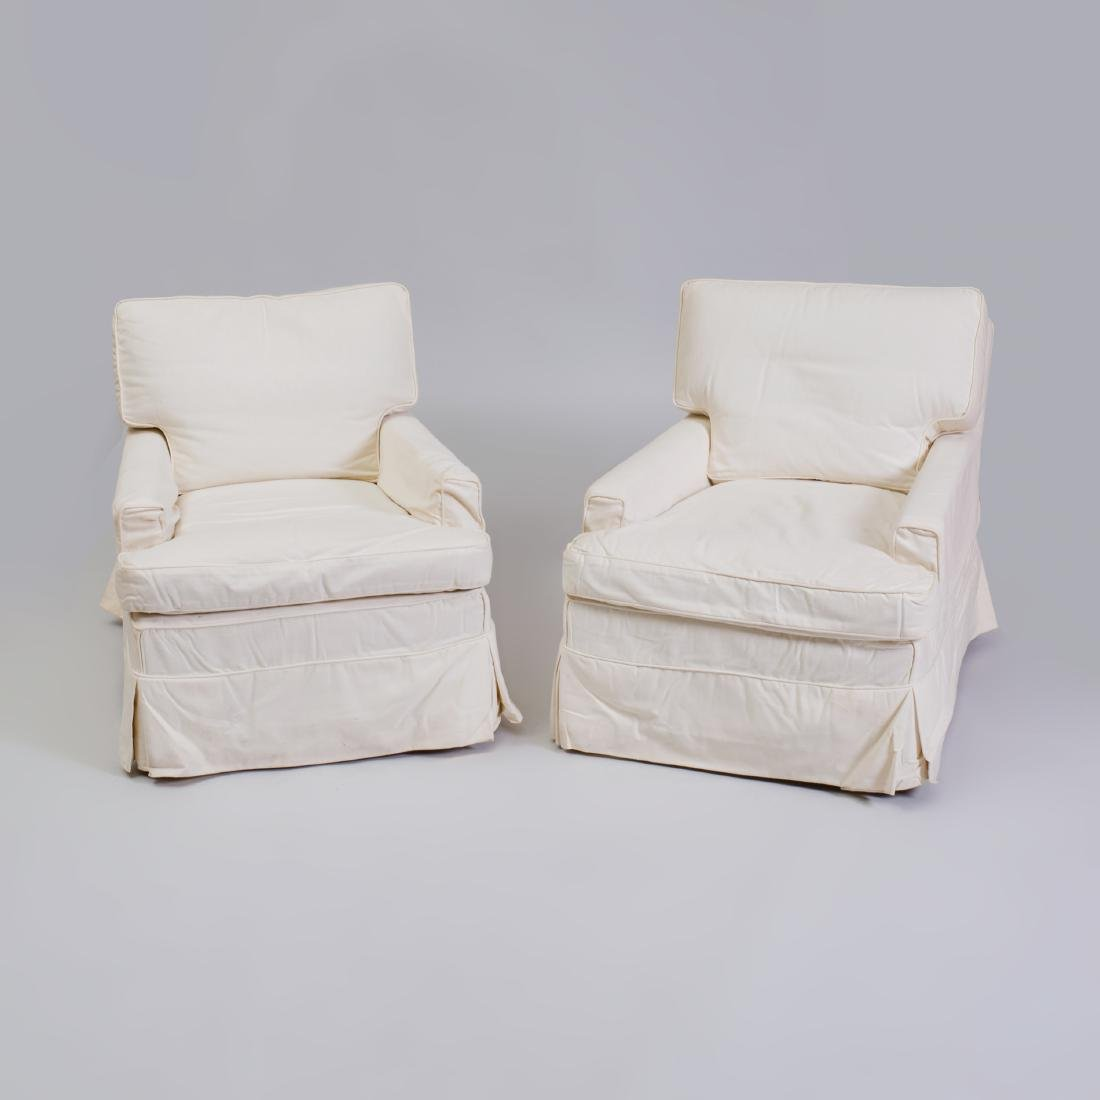 Pair of Cotton Slip Covered Club Chairs, Designed by